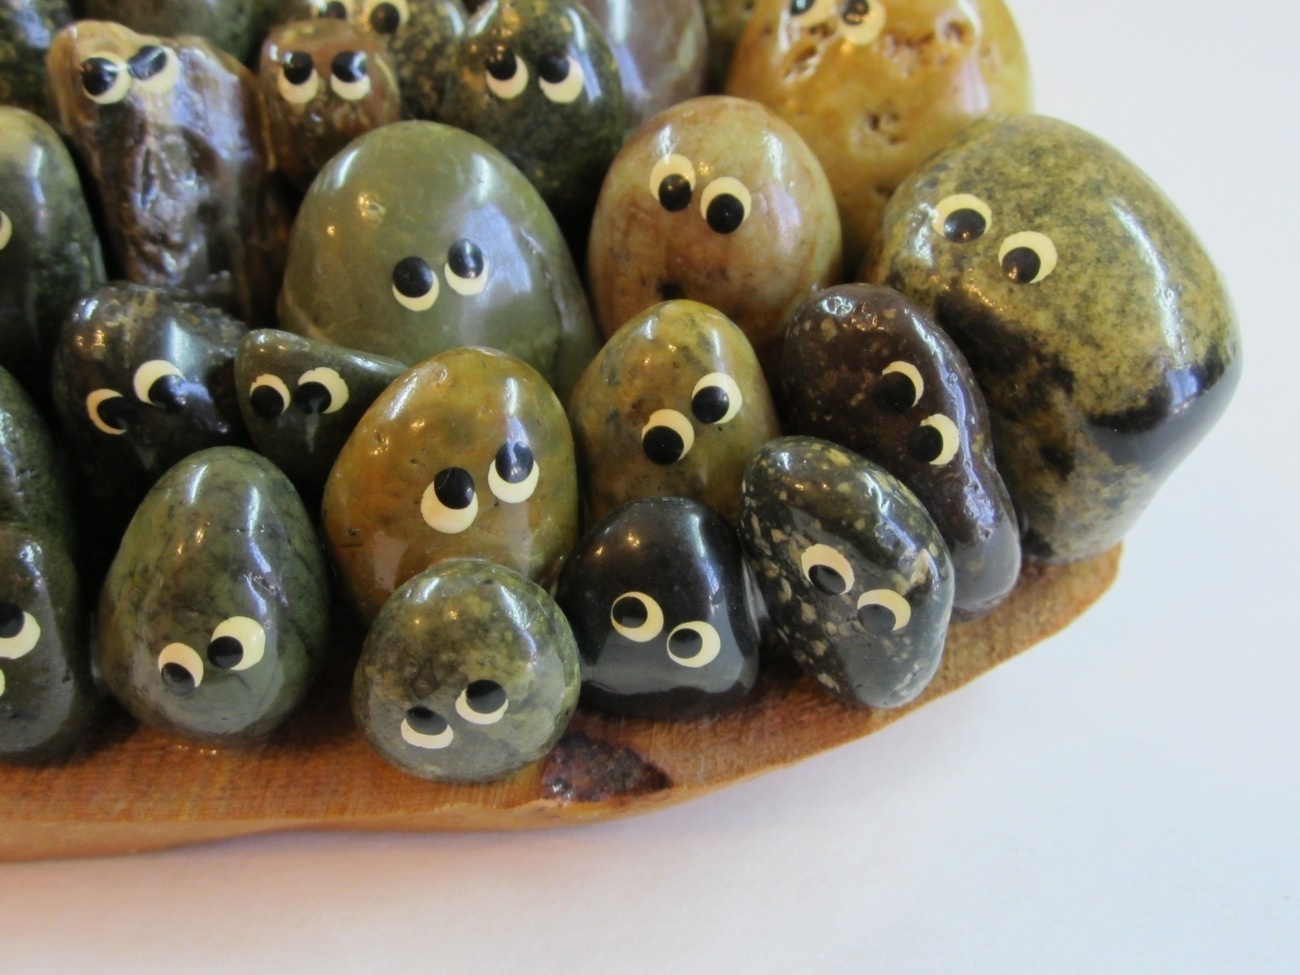 Pebblepeople9